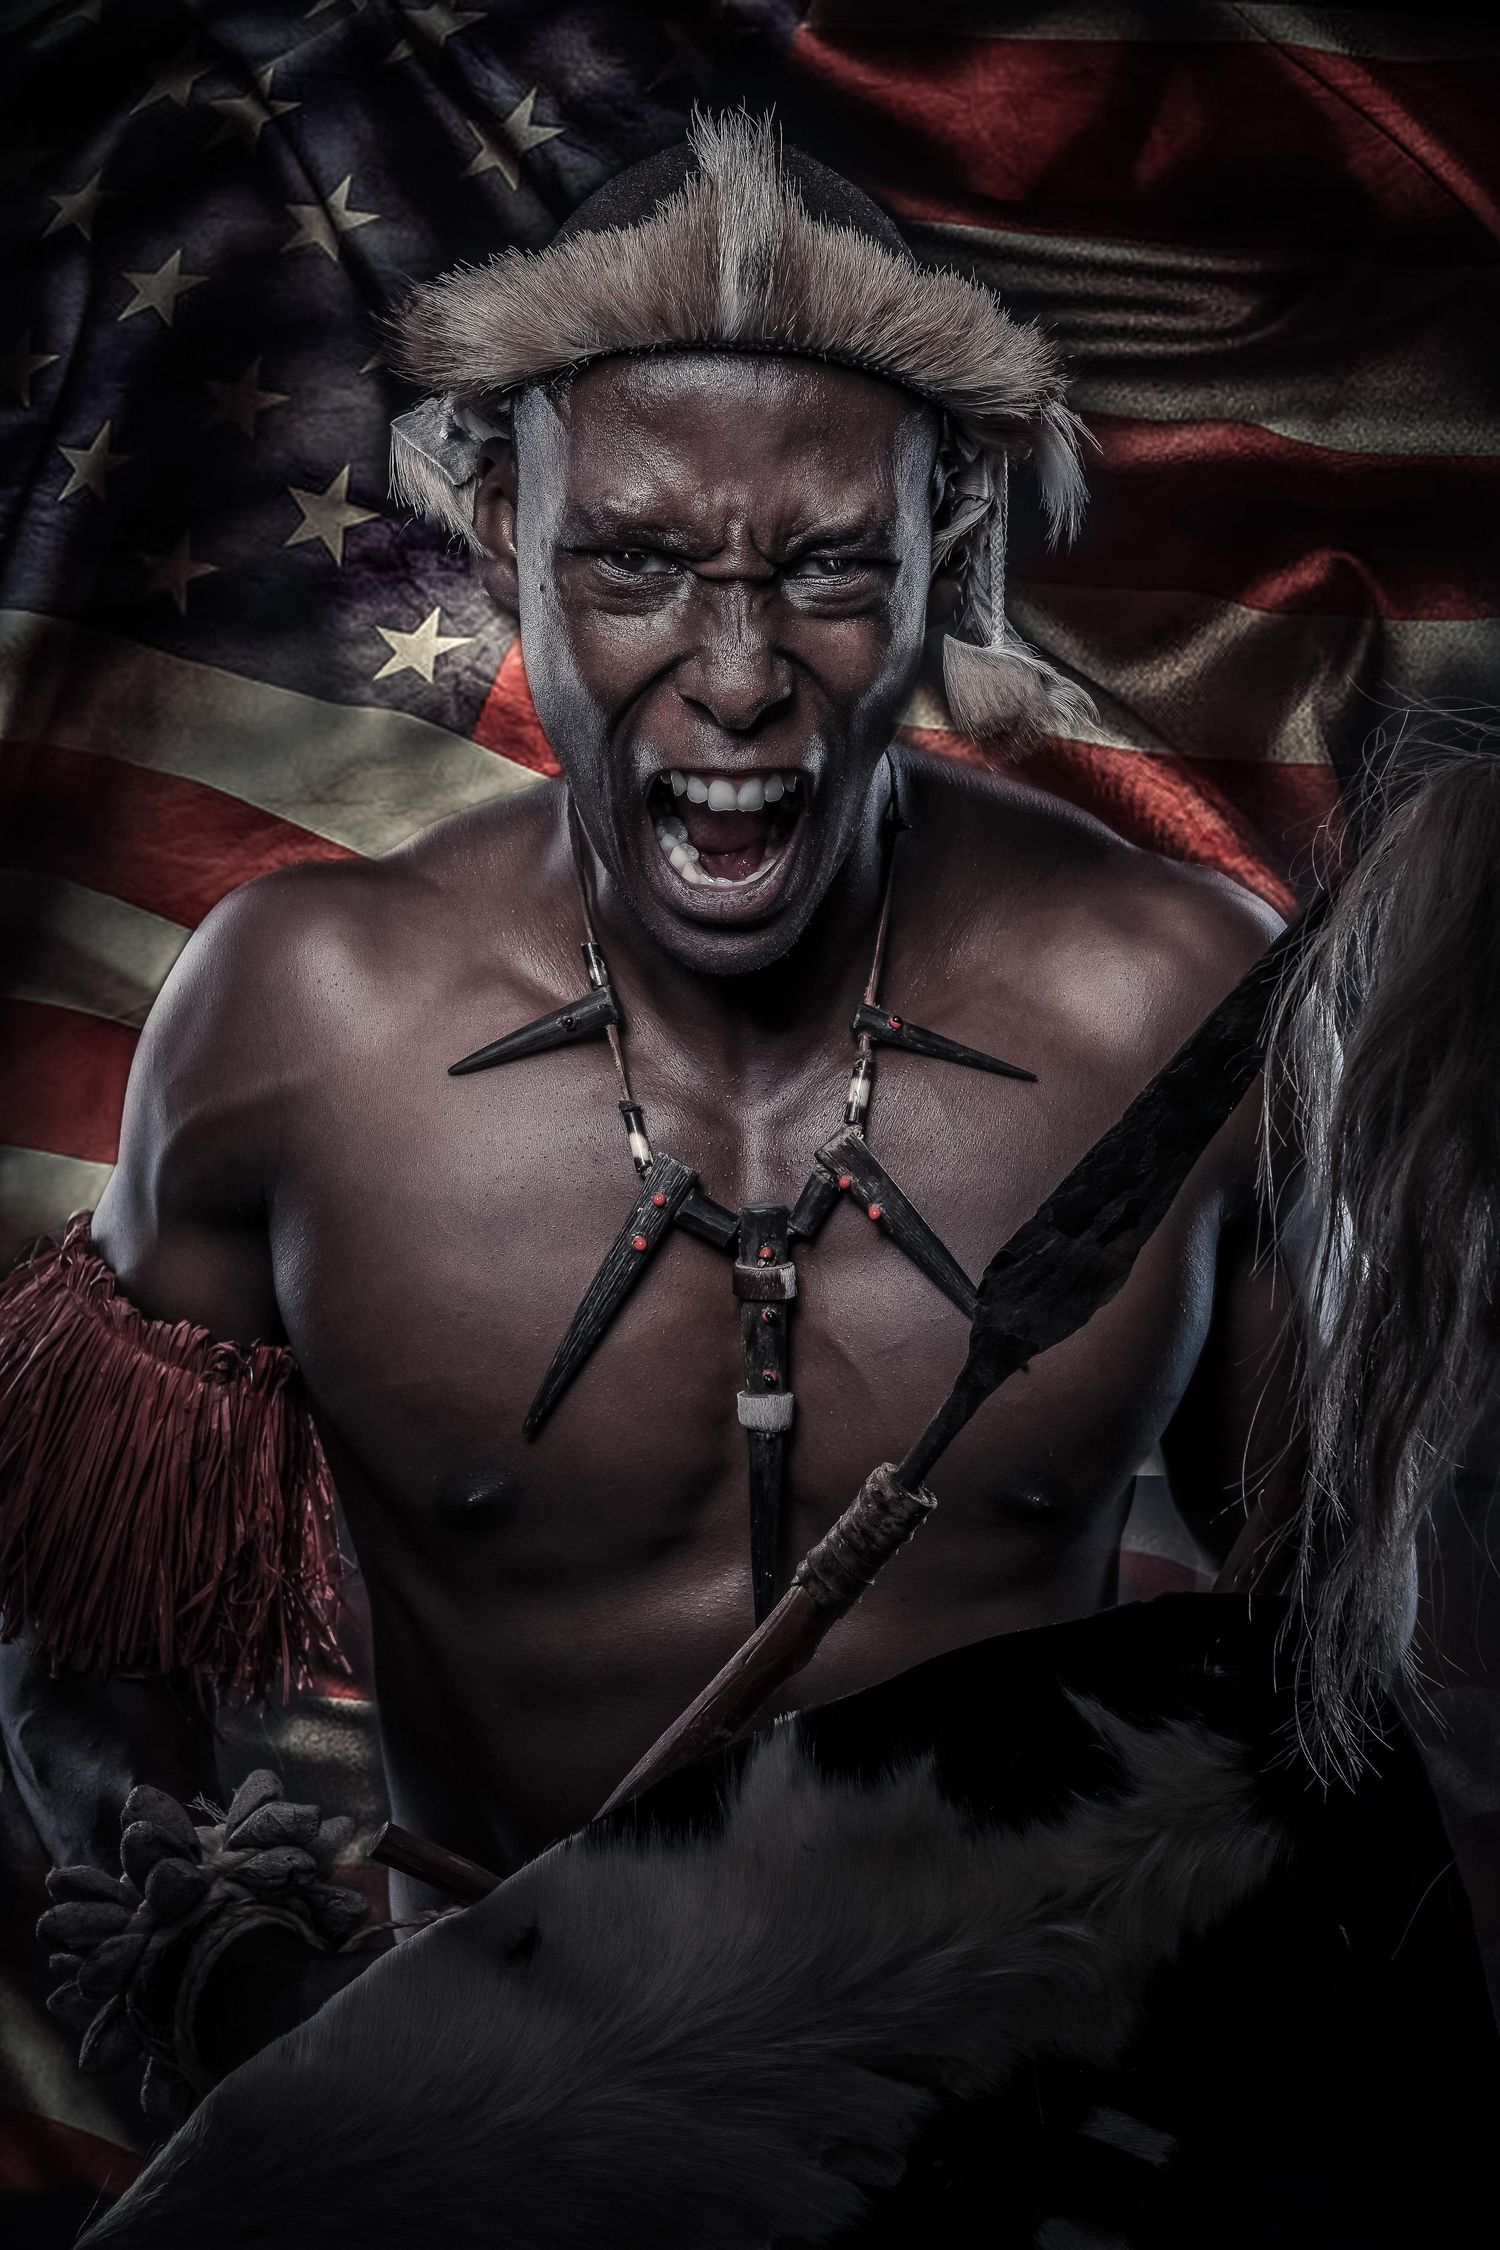 Zulu warrior screaming with American flag in background